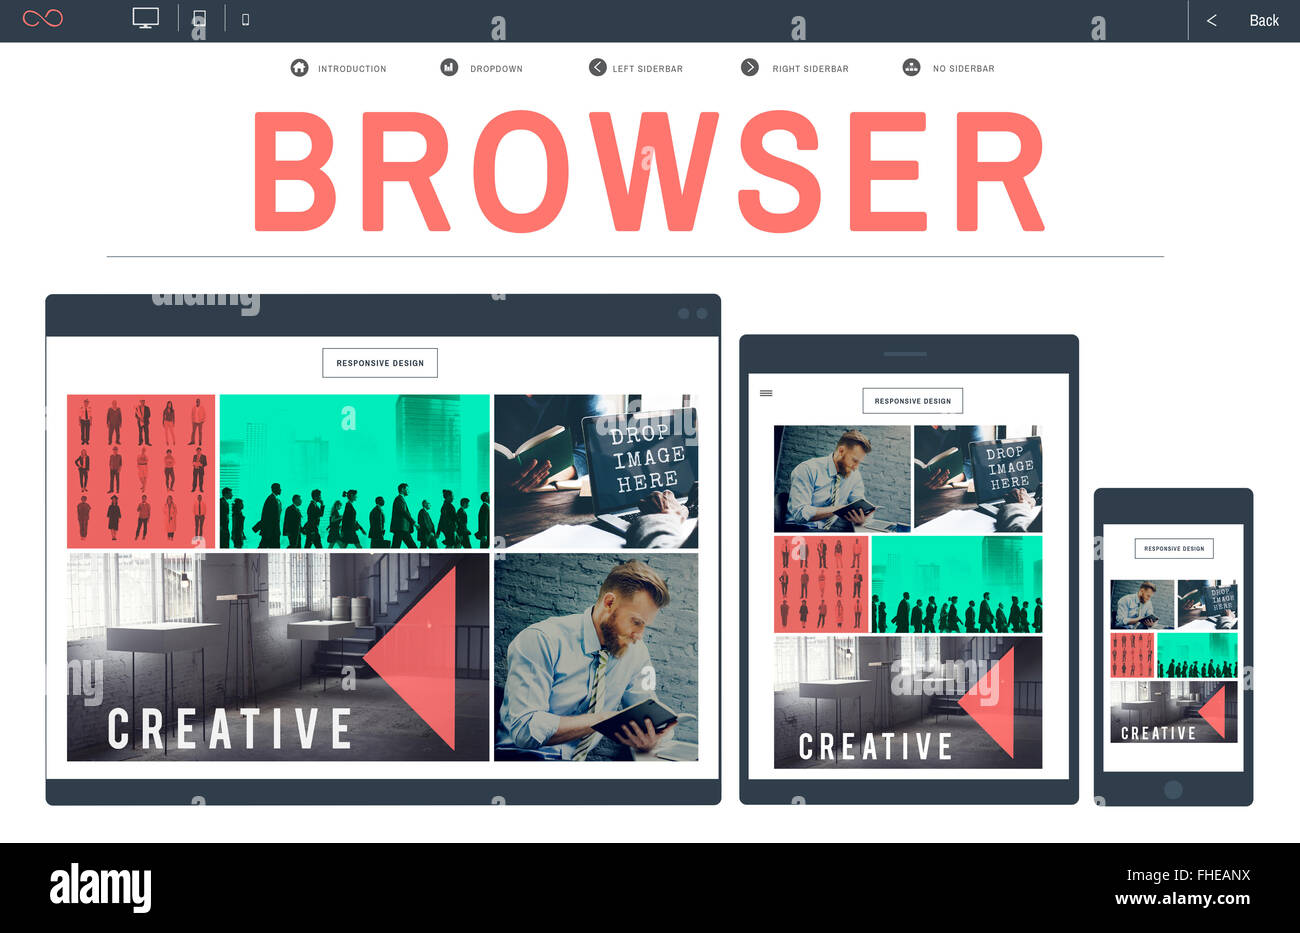 Browser Search Engine Browsing Web Page Technology Concept - Stock Image